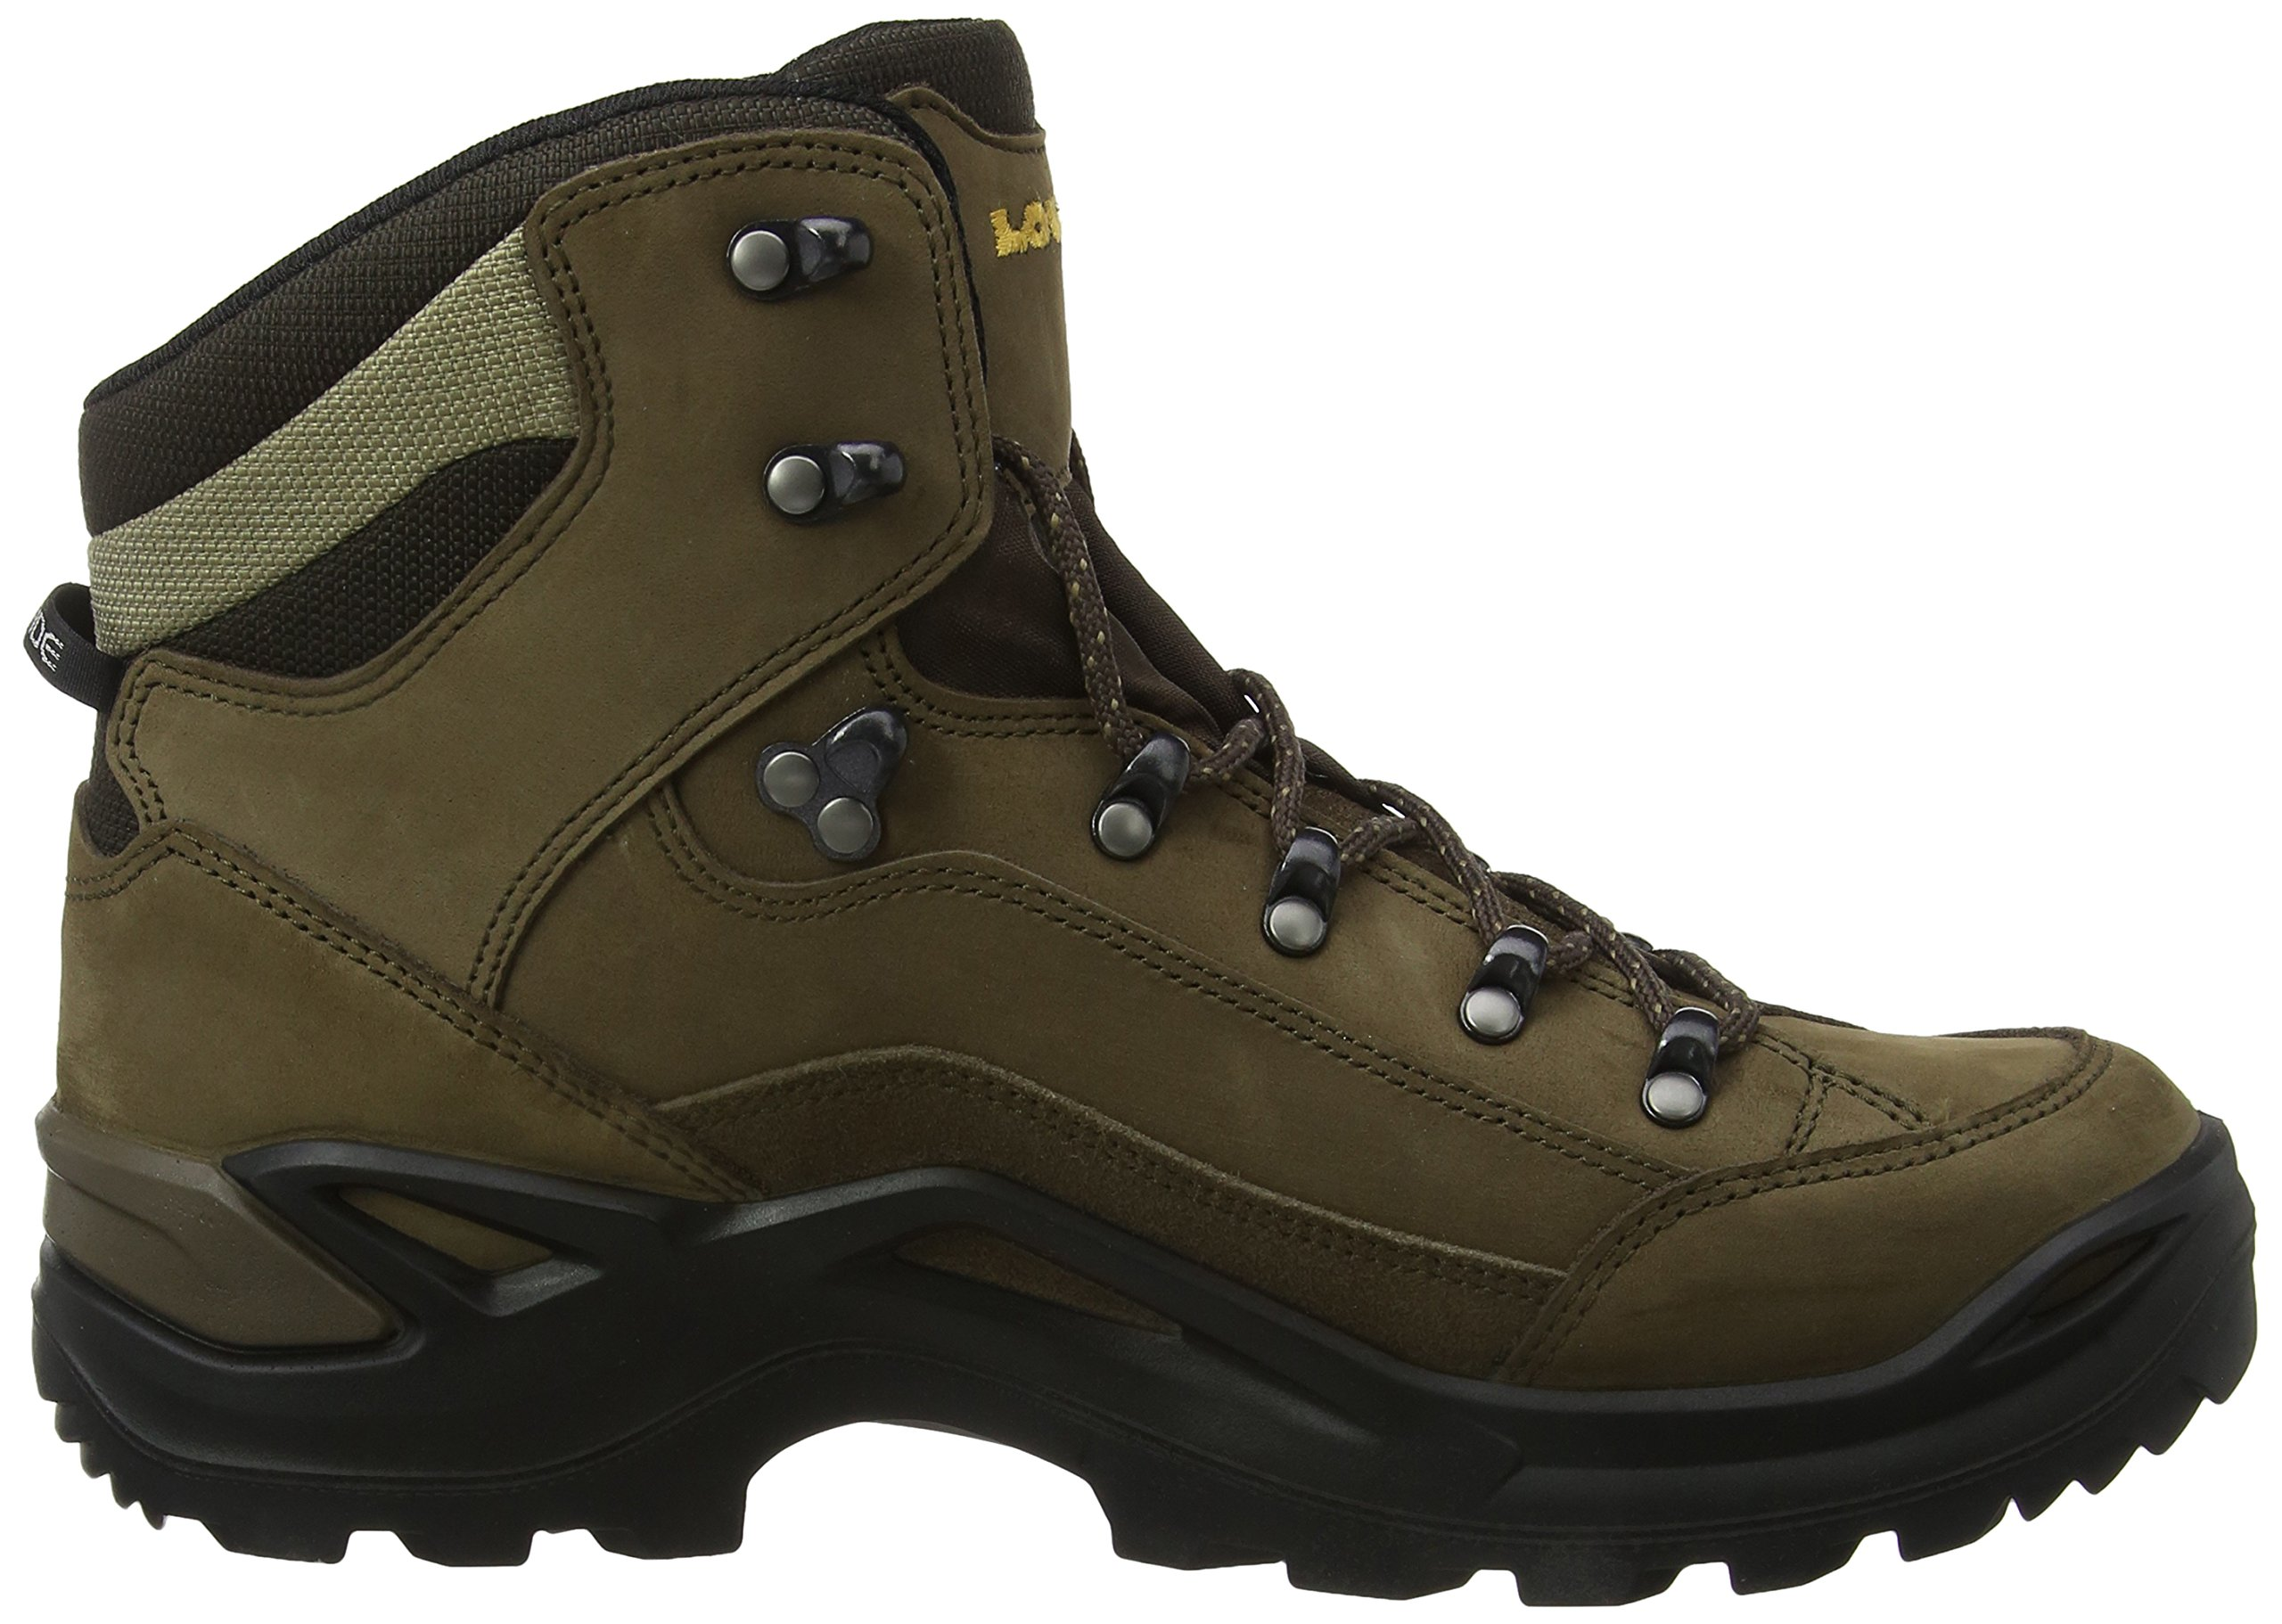 81 Fr3VPuBL - Lowa Men's Renegade GTX Mid High Rise Hiking Boots